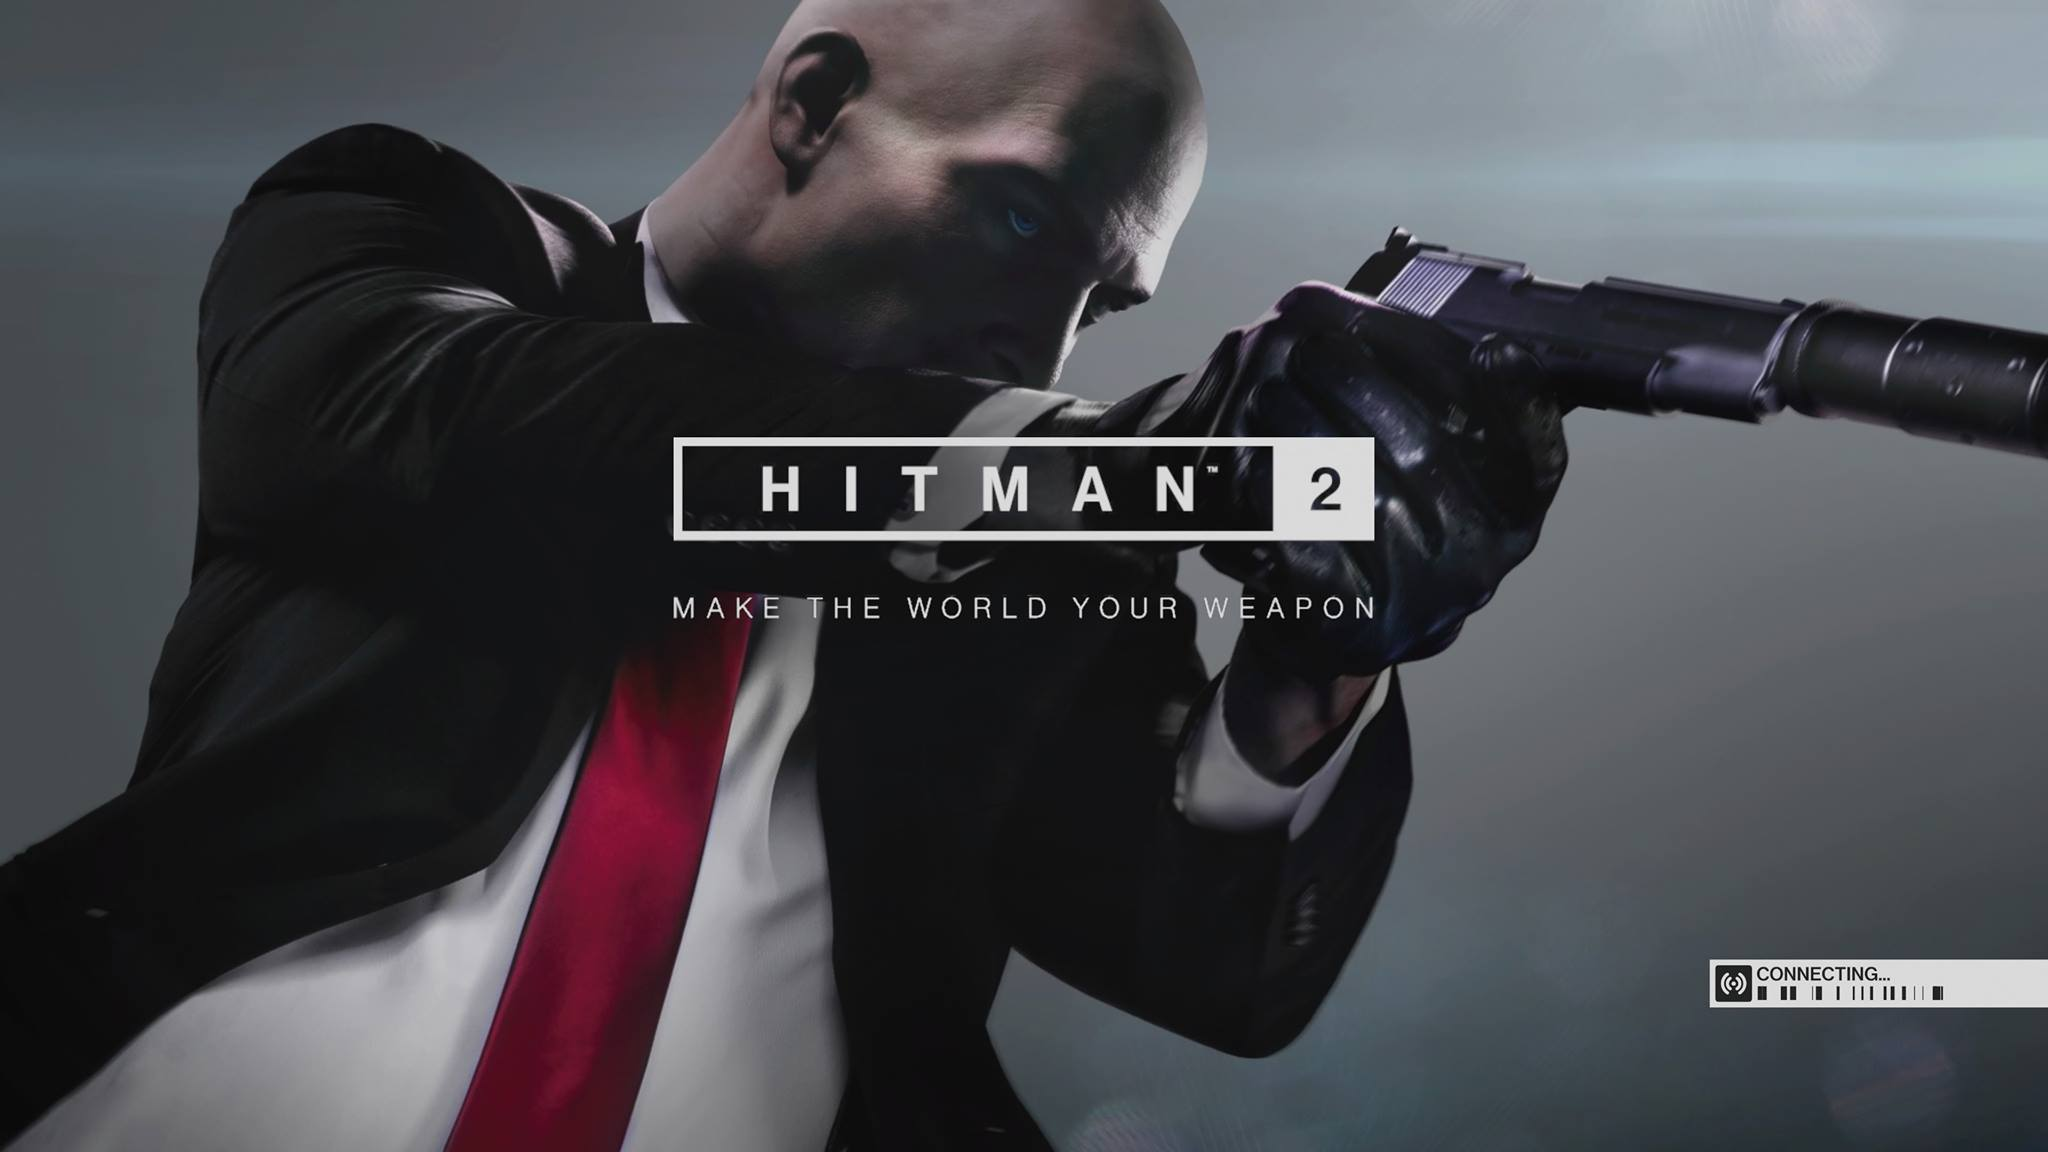 Hitman 2 Review A Murder Simulator With A Sense Of Humor